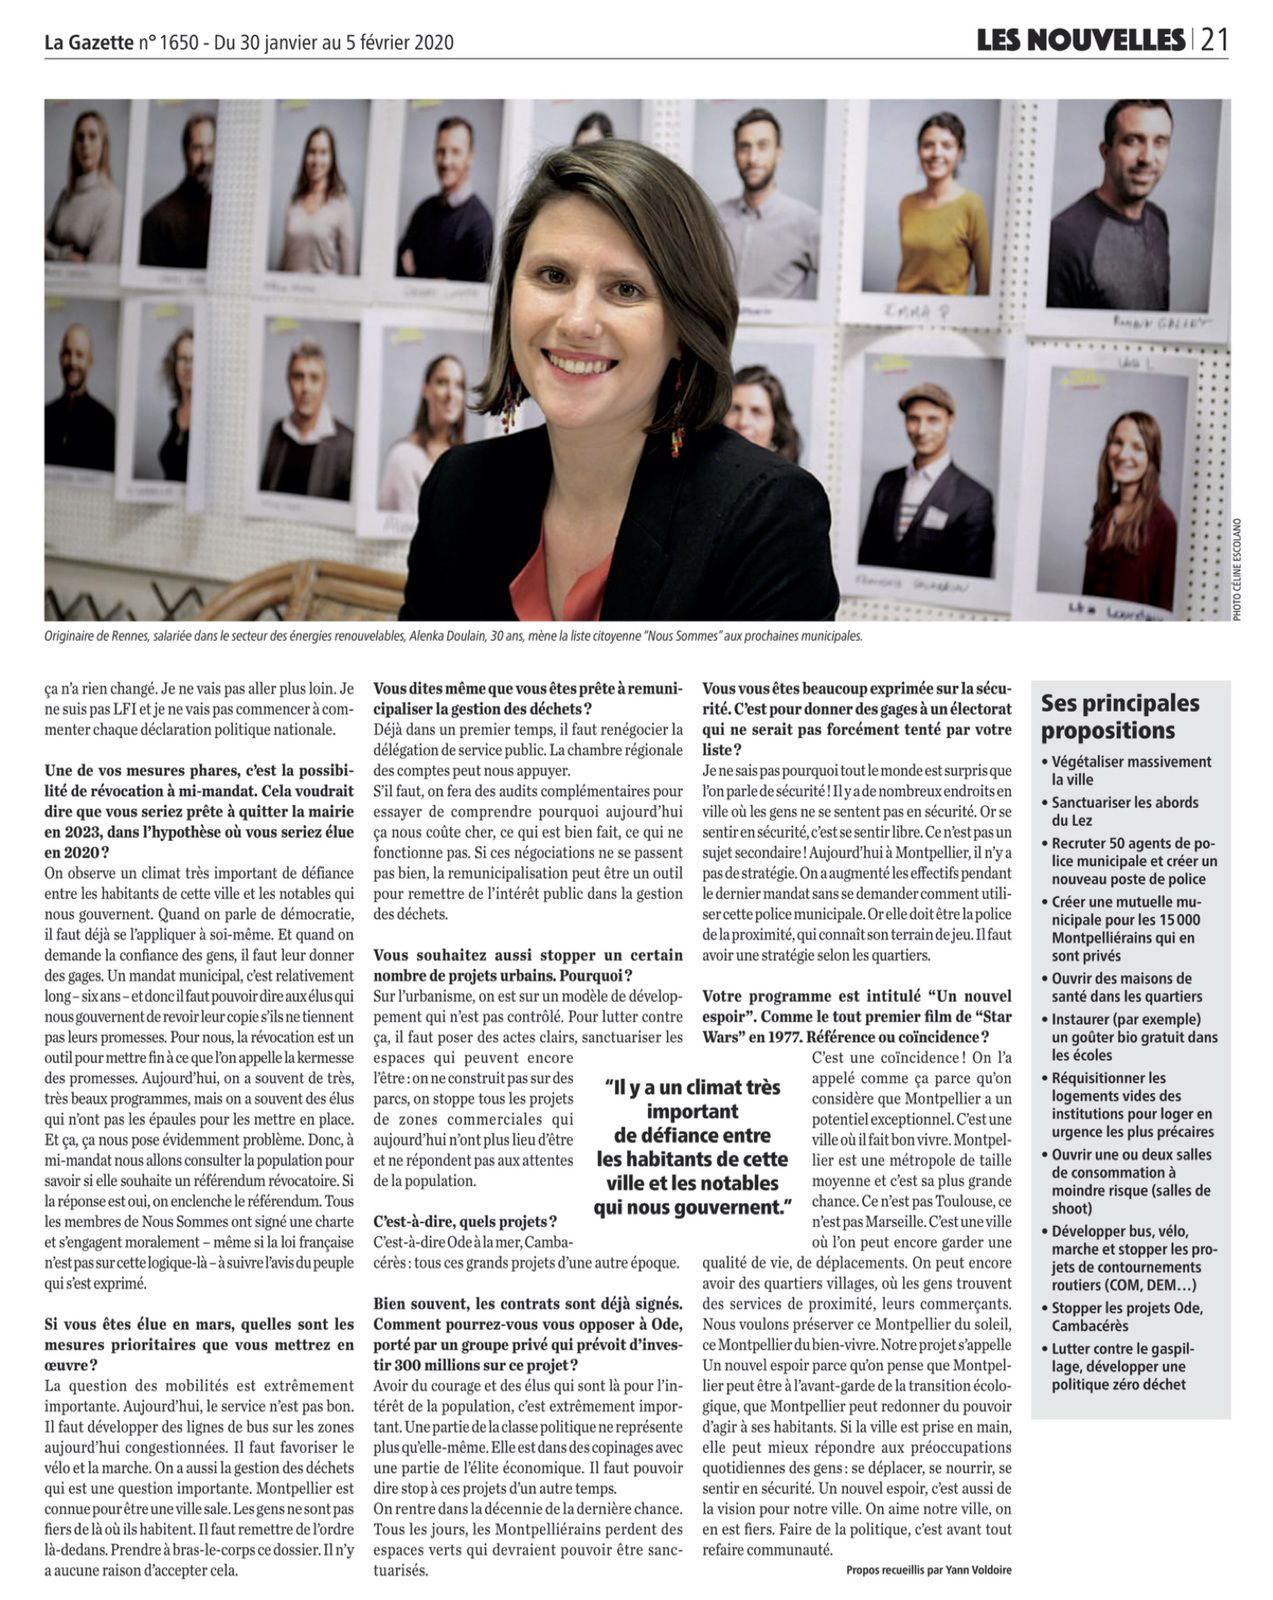 #Alenka2020 #NousSommes : Interview à la Gazette de Montpellier